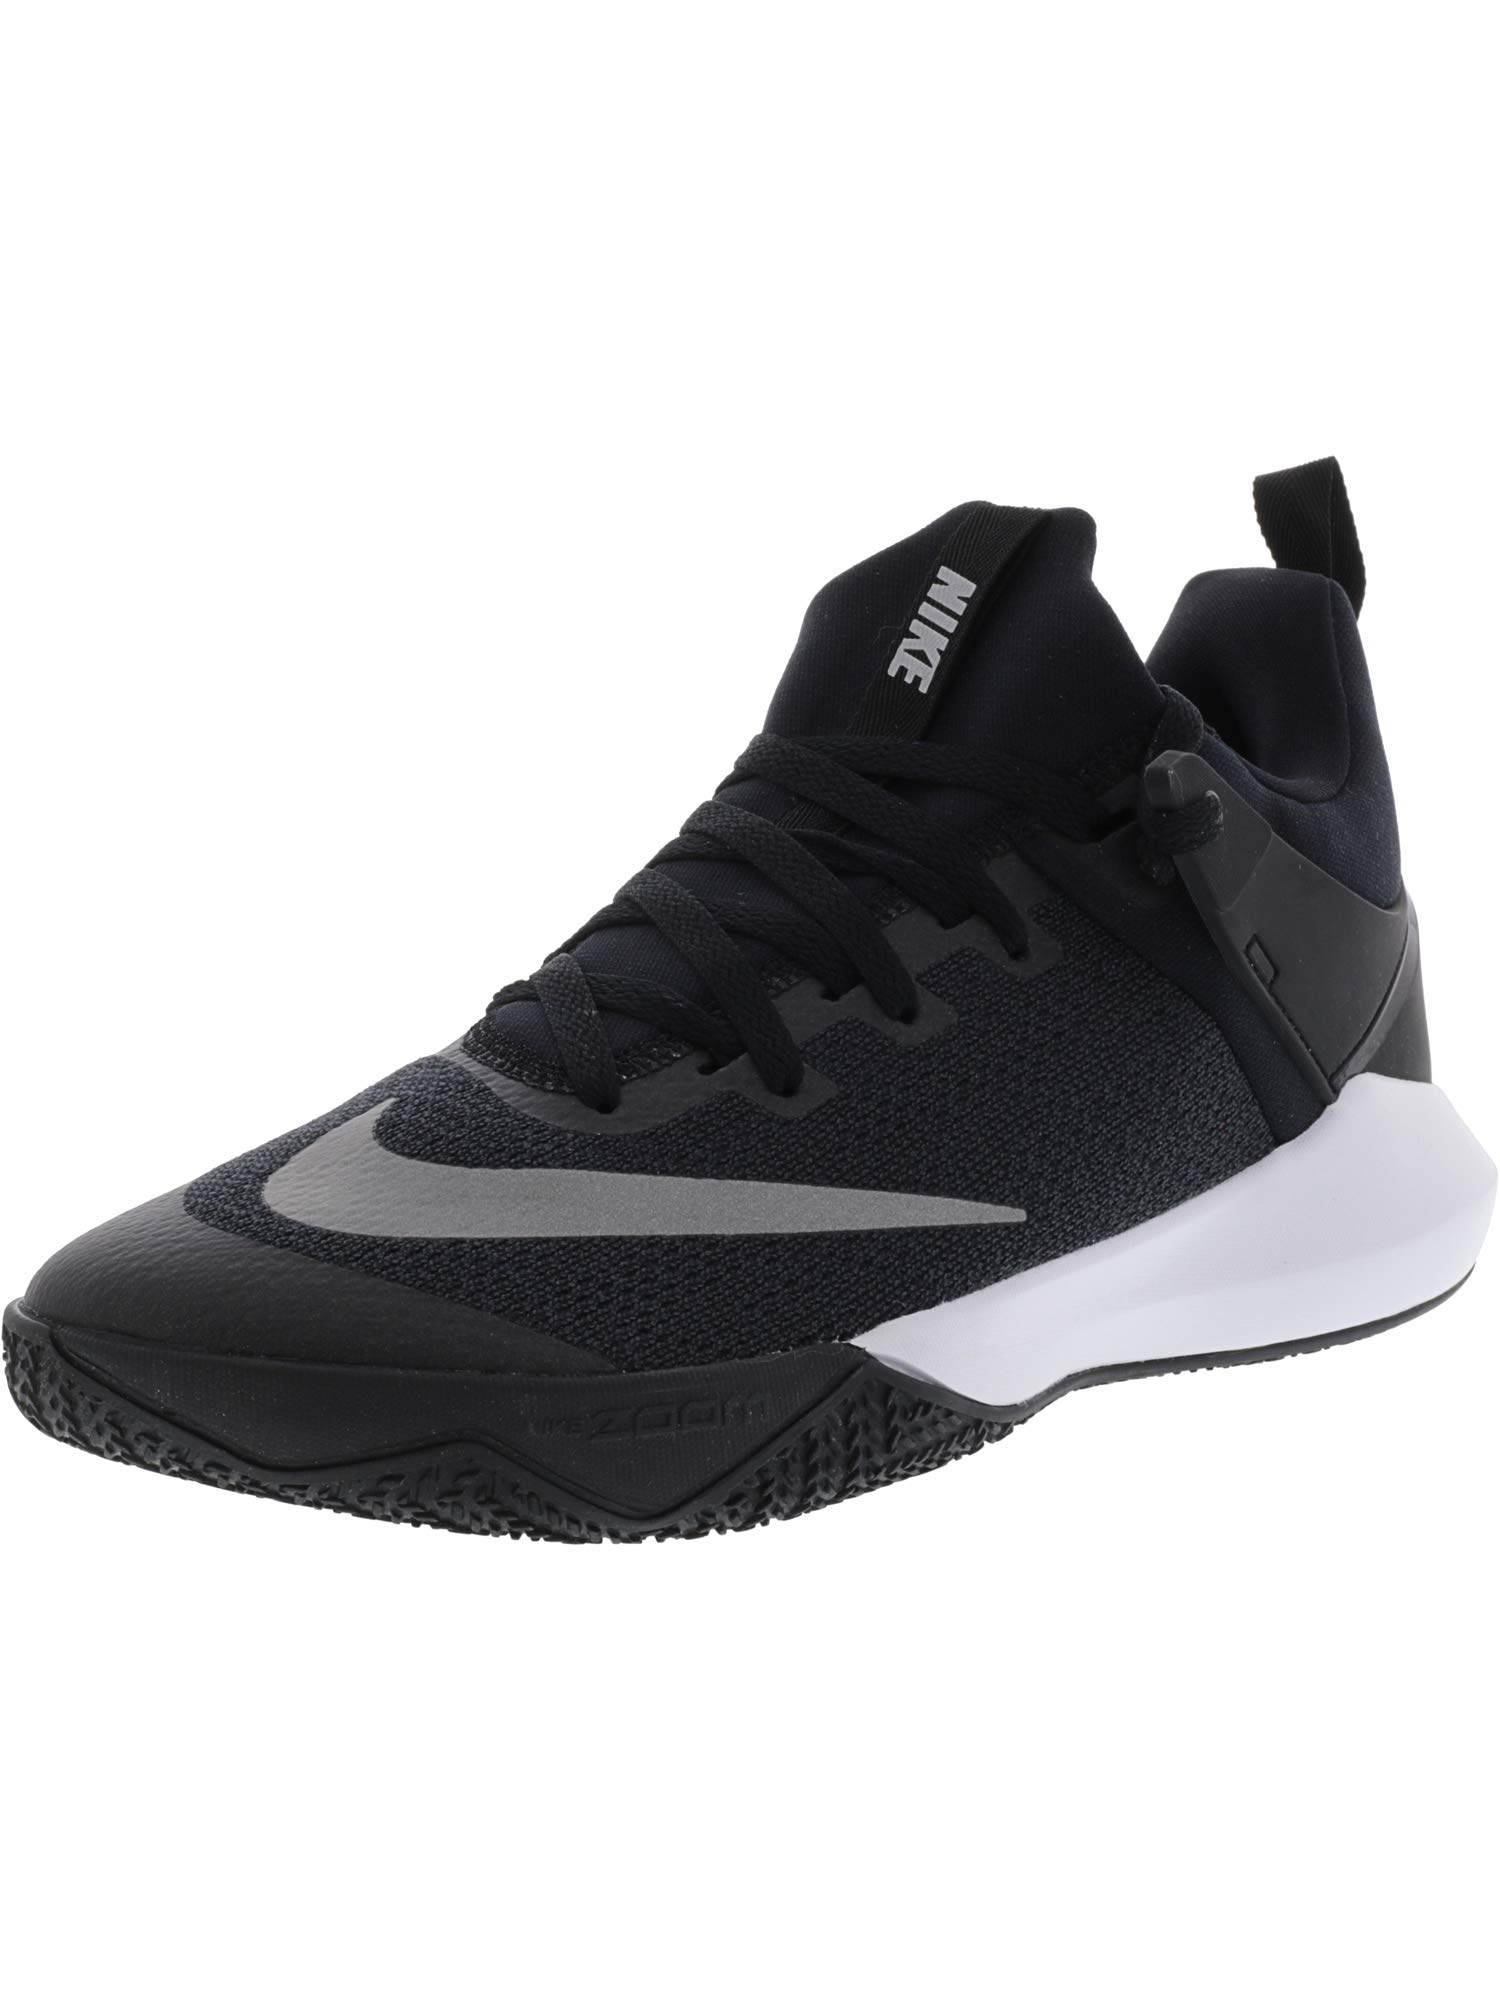 46e7c2bbf18 Galleon - Nike Men s Zoom Shift Tb Black White Ankle-High Mesh Basketball  Shoe - 9.5M